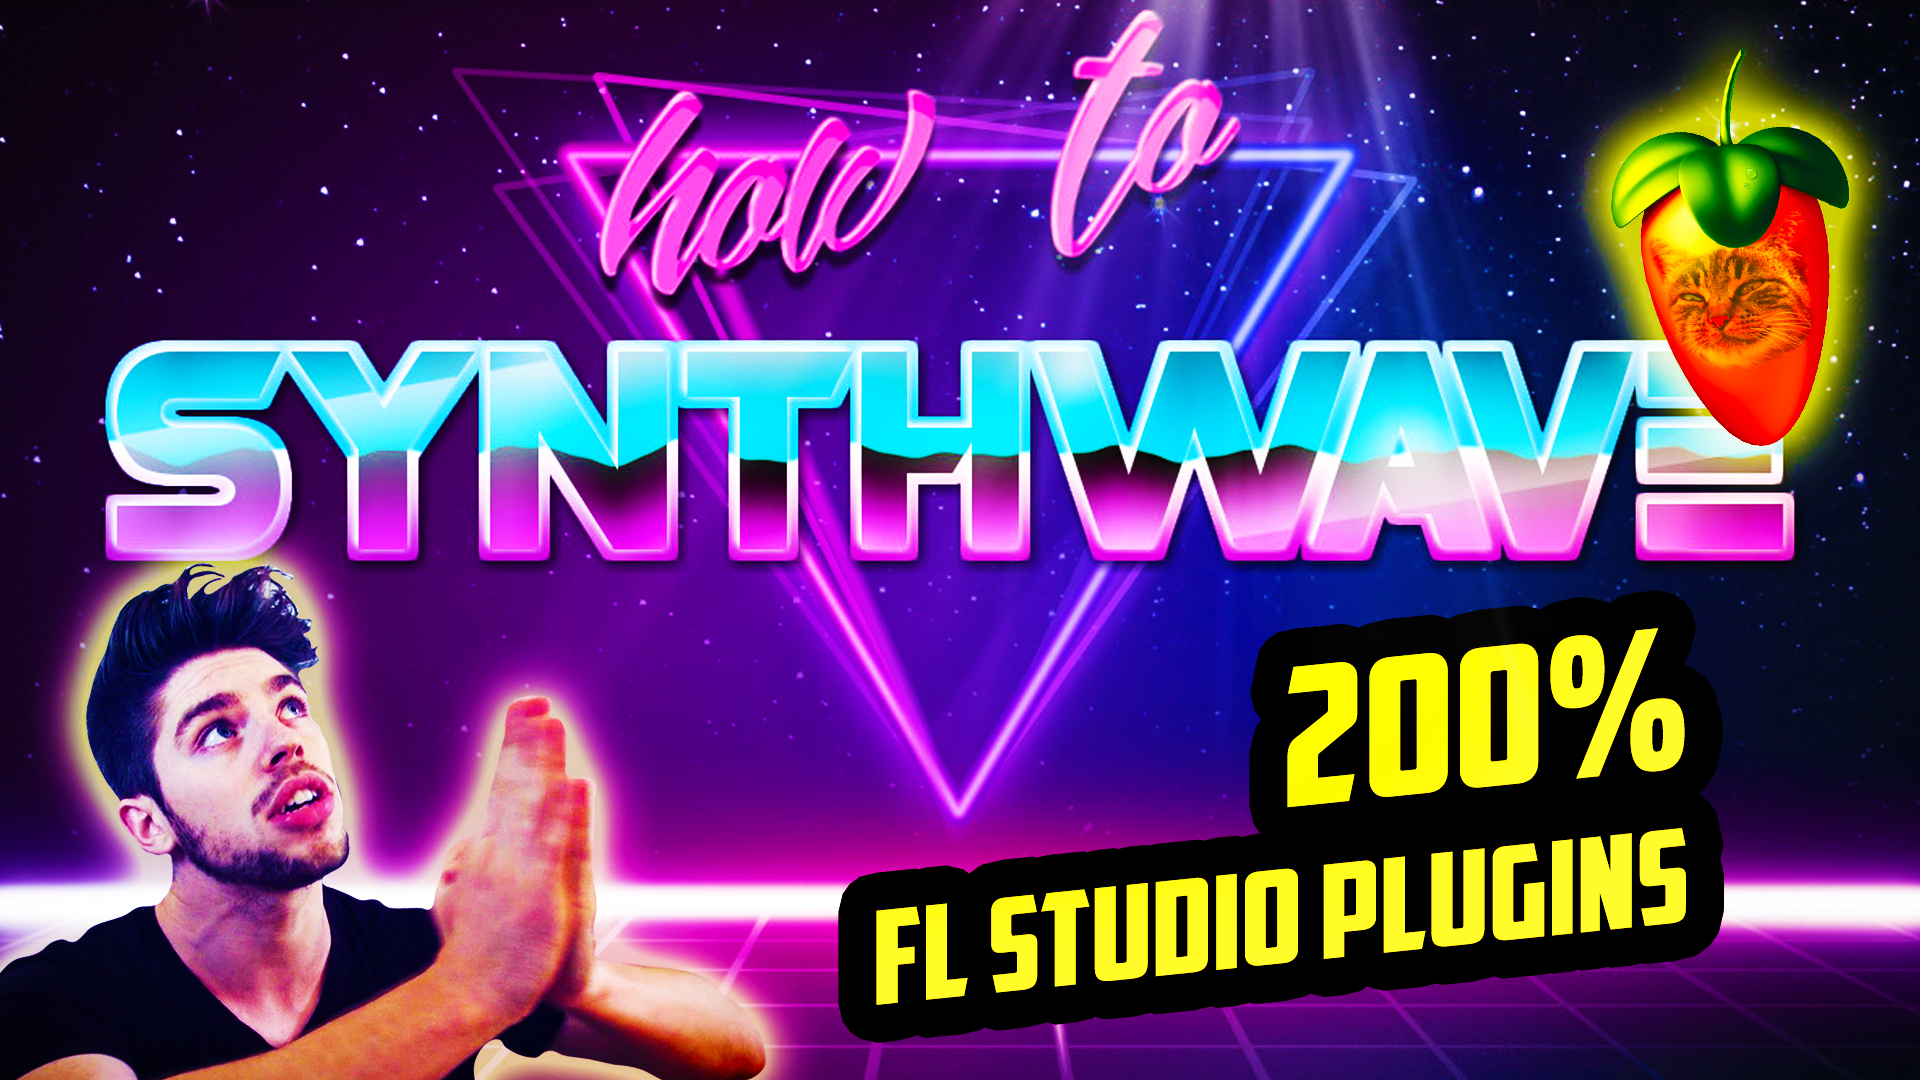 SYNTHWAVE WITH FL STUDIO PLUGINS ONLY (FLP) by EDWAN - Free